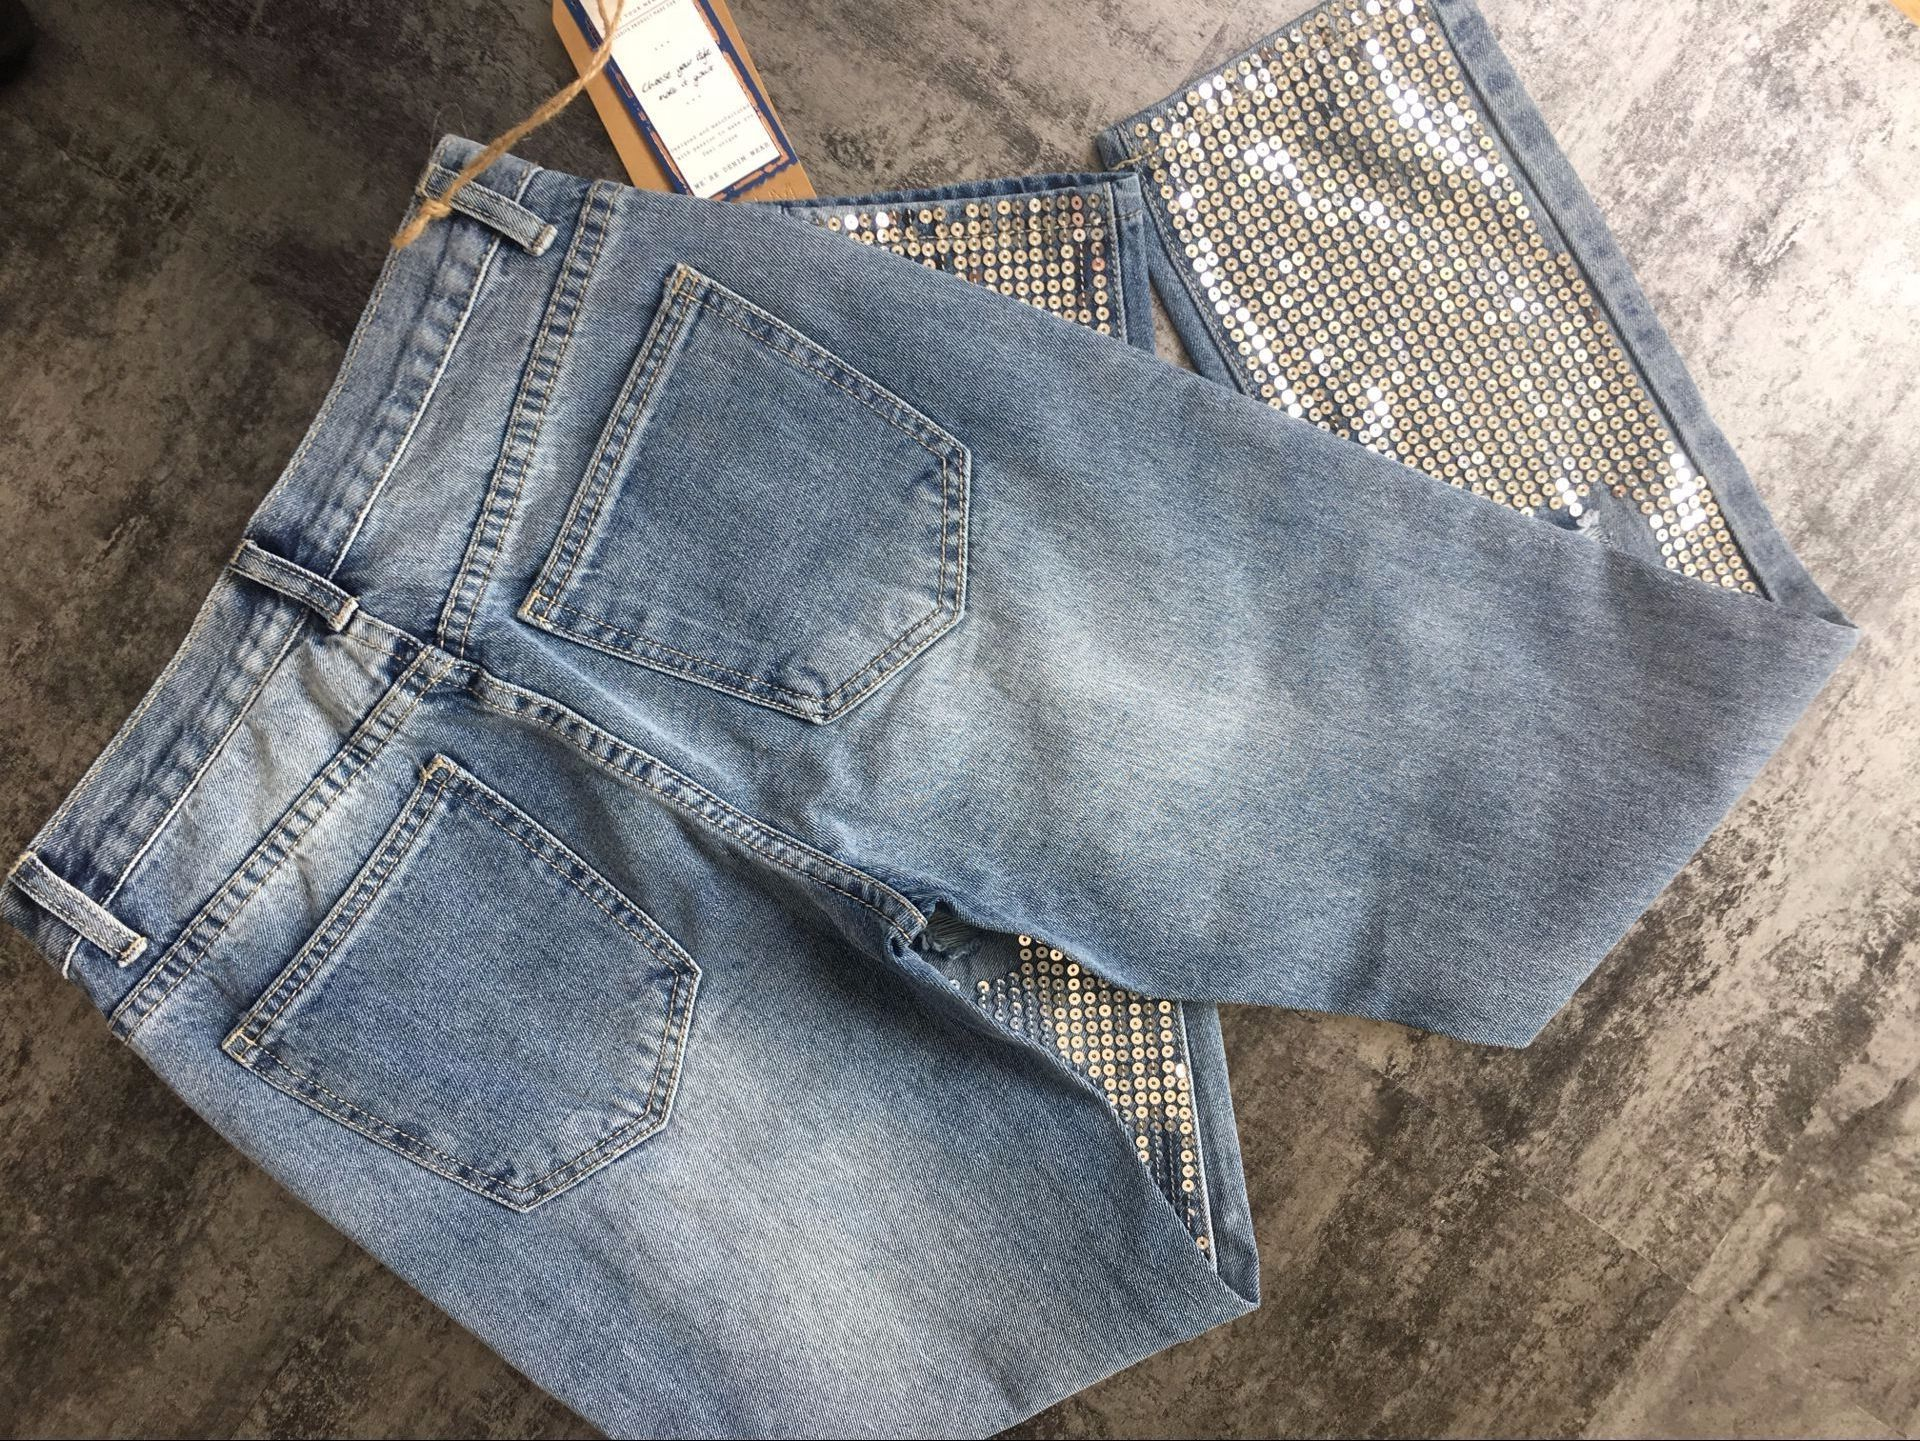 18 Fashion Hole jeans woman ripped jeans for women jeans Sequined mujer femme denim jean pants Scratched pantalones feminino 23